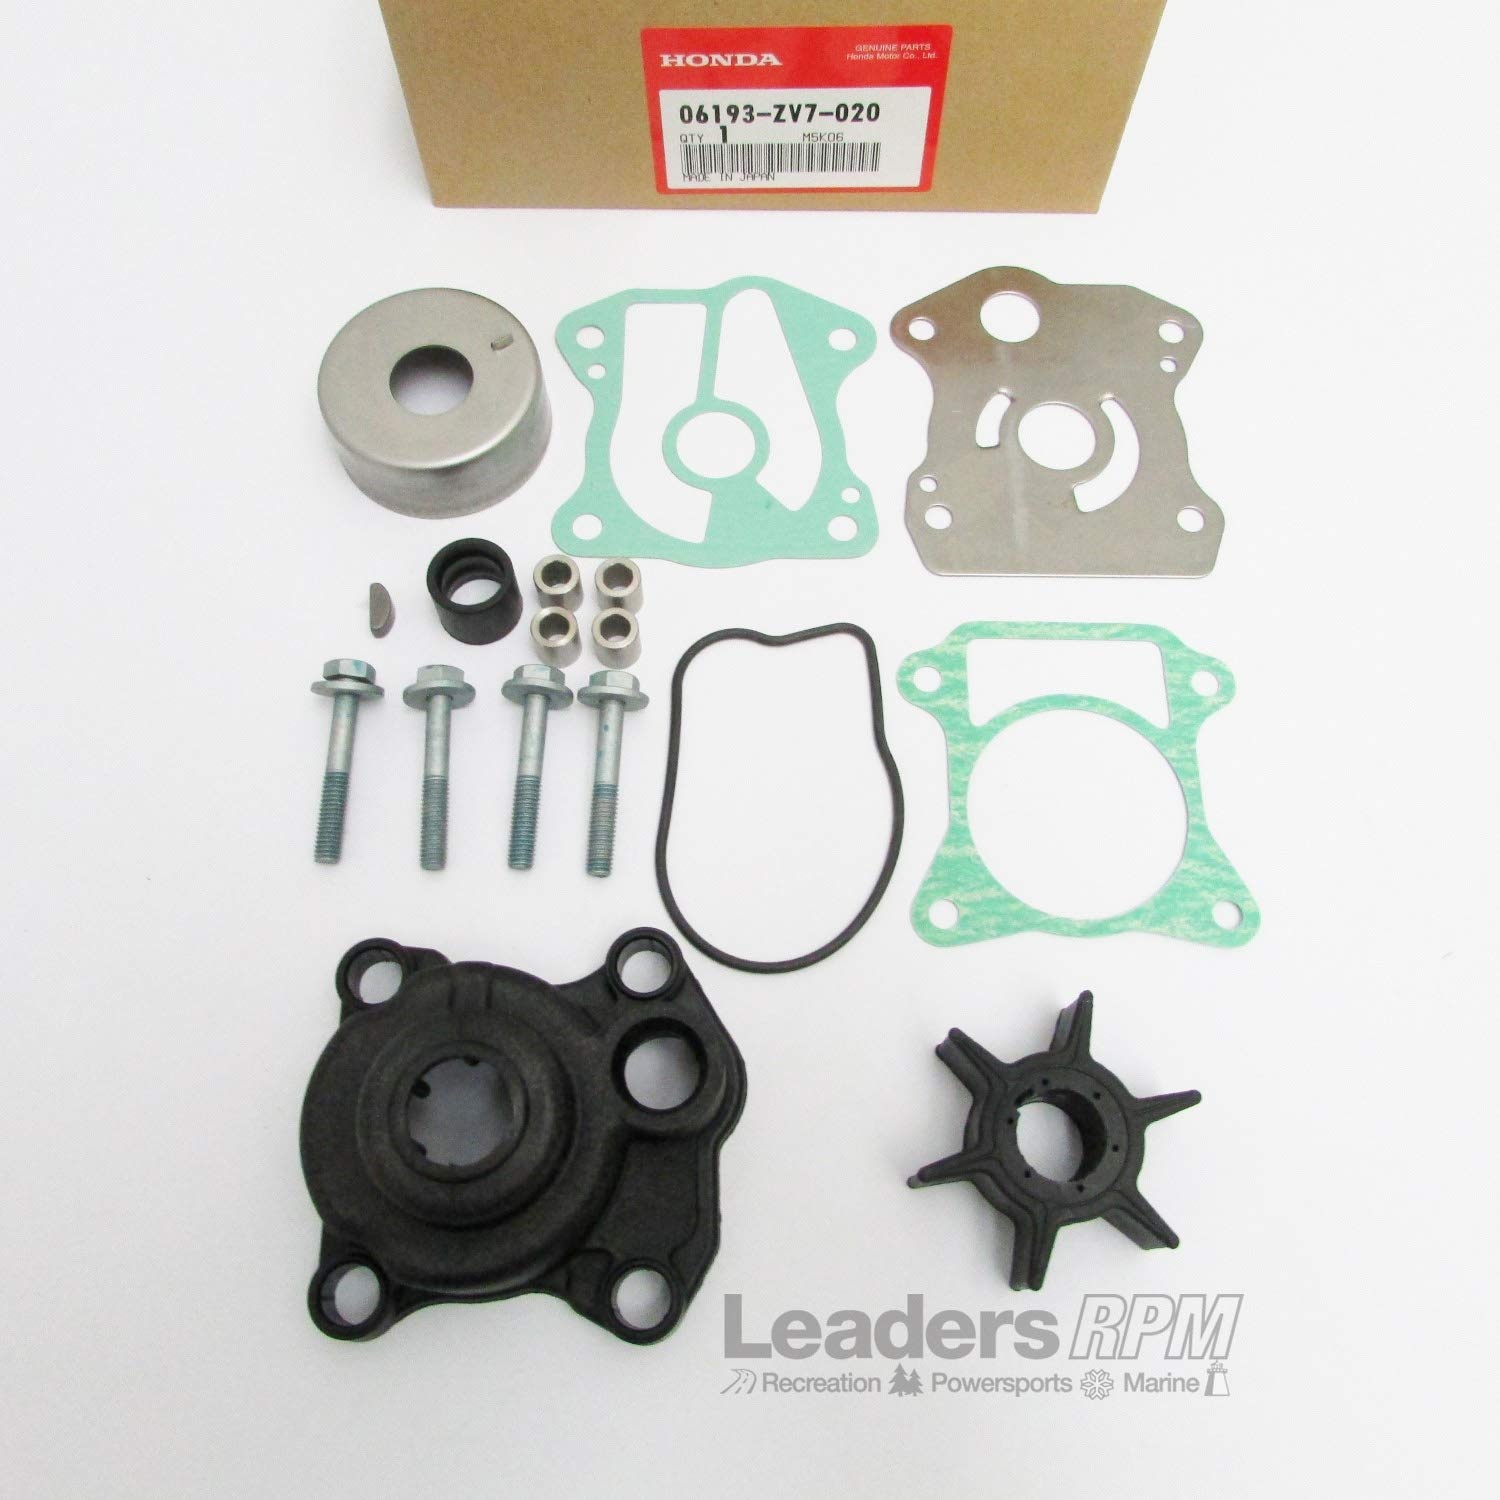 Honda 06193-ZV7-020 Pump Kit, Impeller; 06193ZV7020 Made by Honda